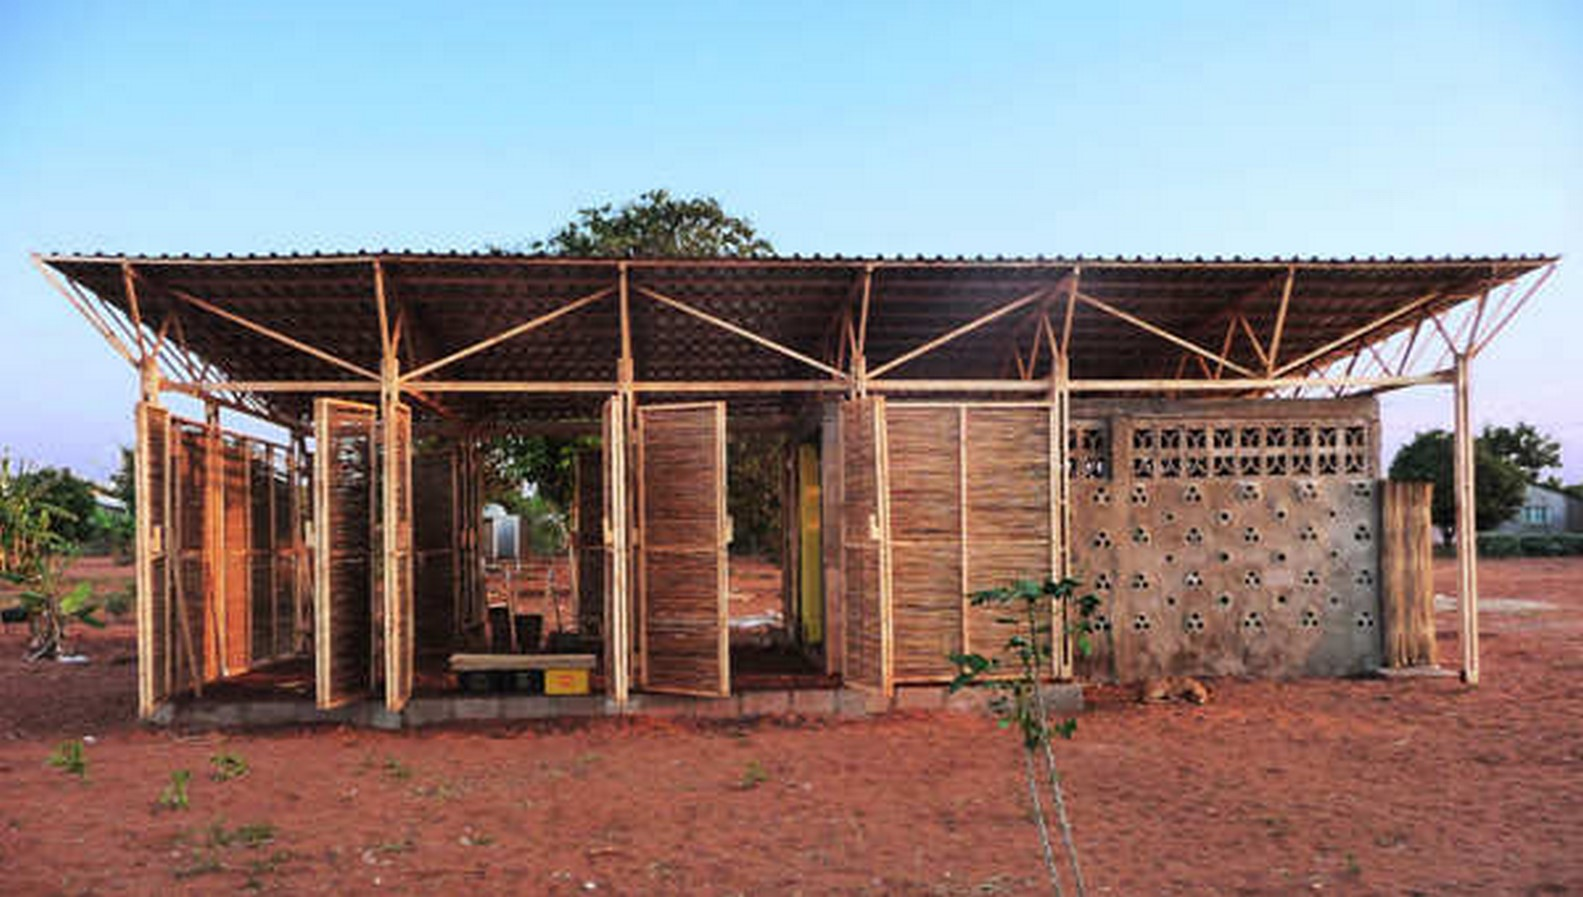 Educational Building In Mozambique / Master students of Bergen School of Architecture - sheet1